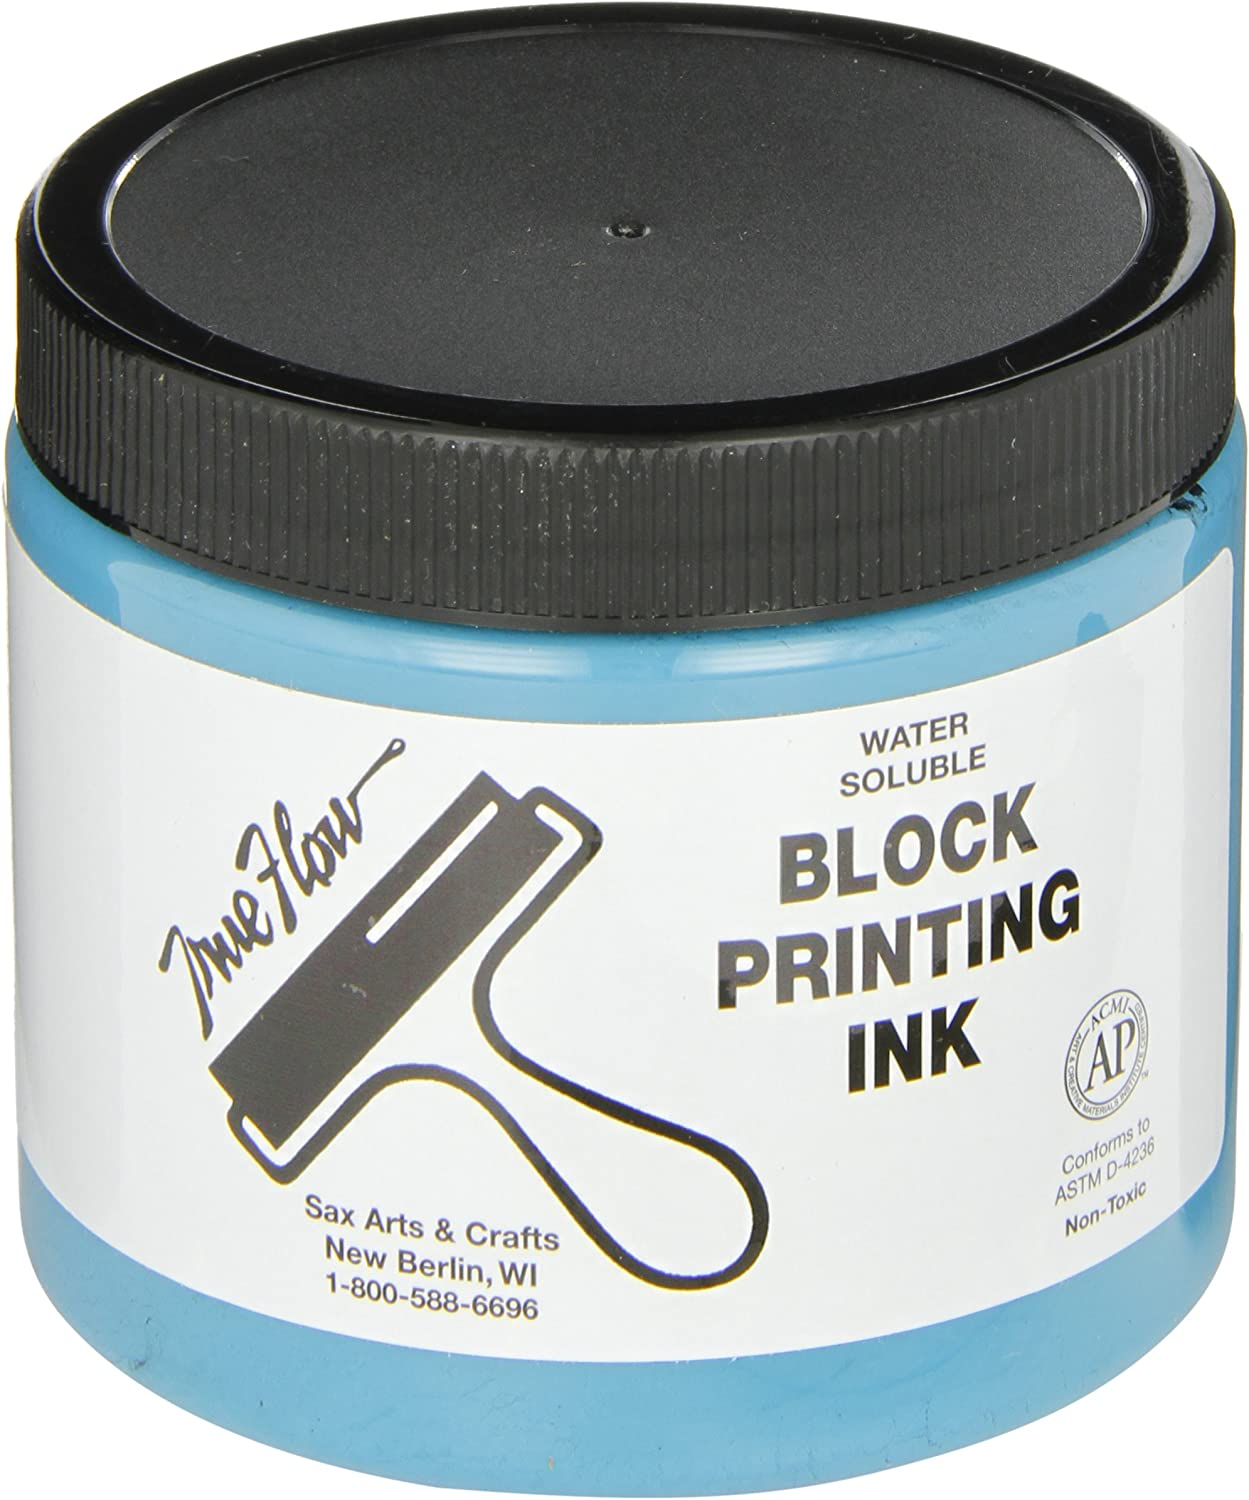 Sax True Flow Water Soluble Block Printing Ink - 16 Ounces - Turquoise